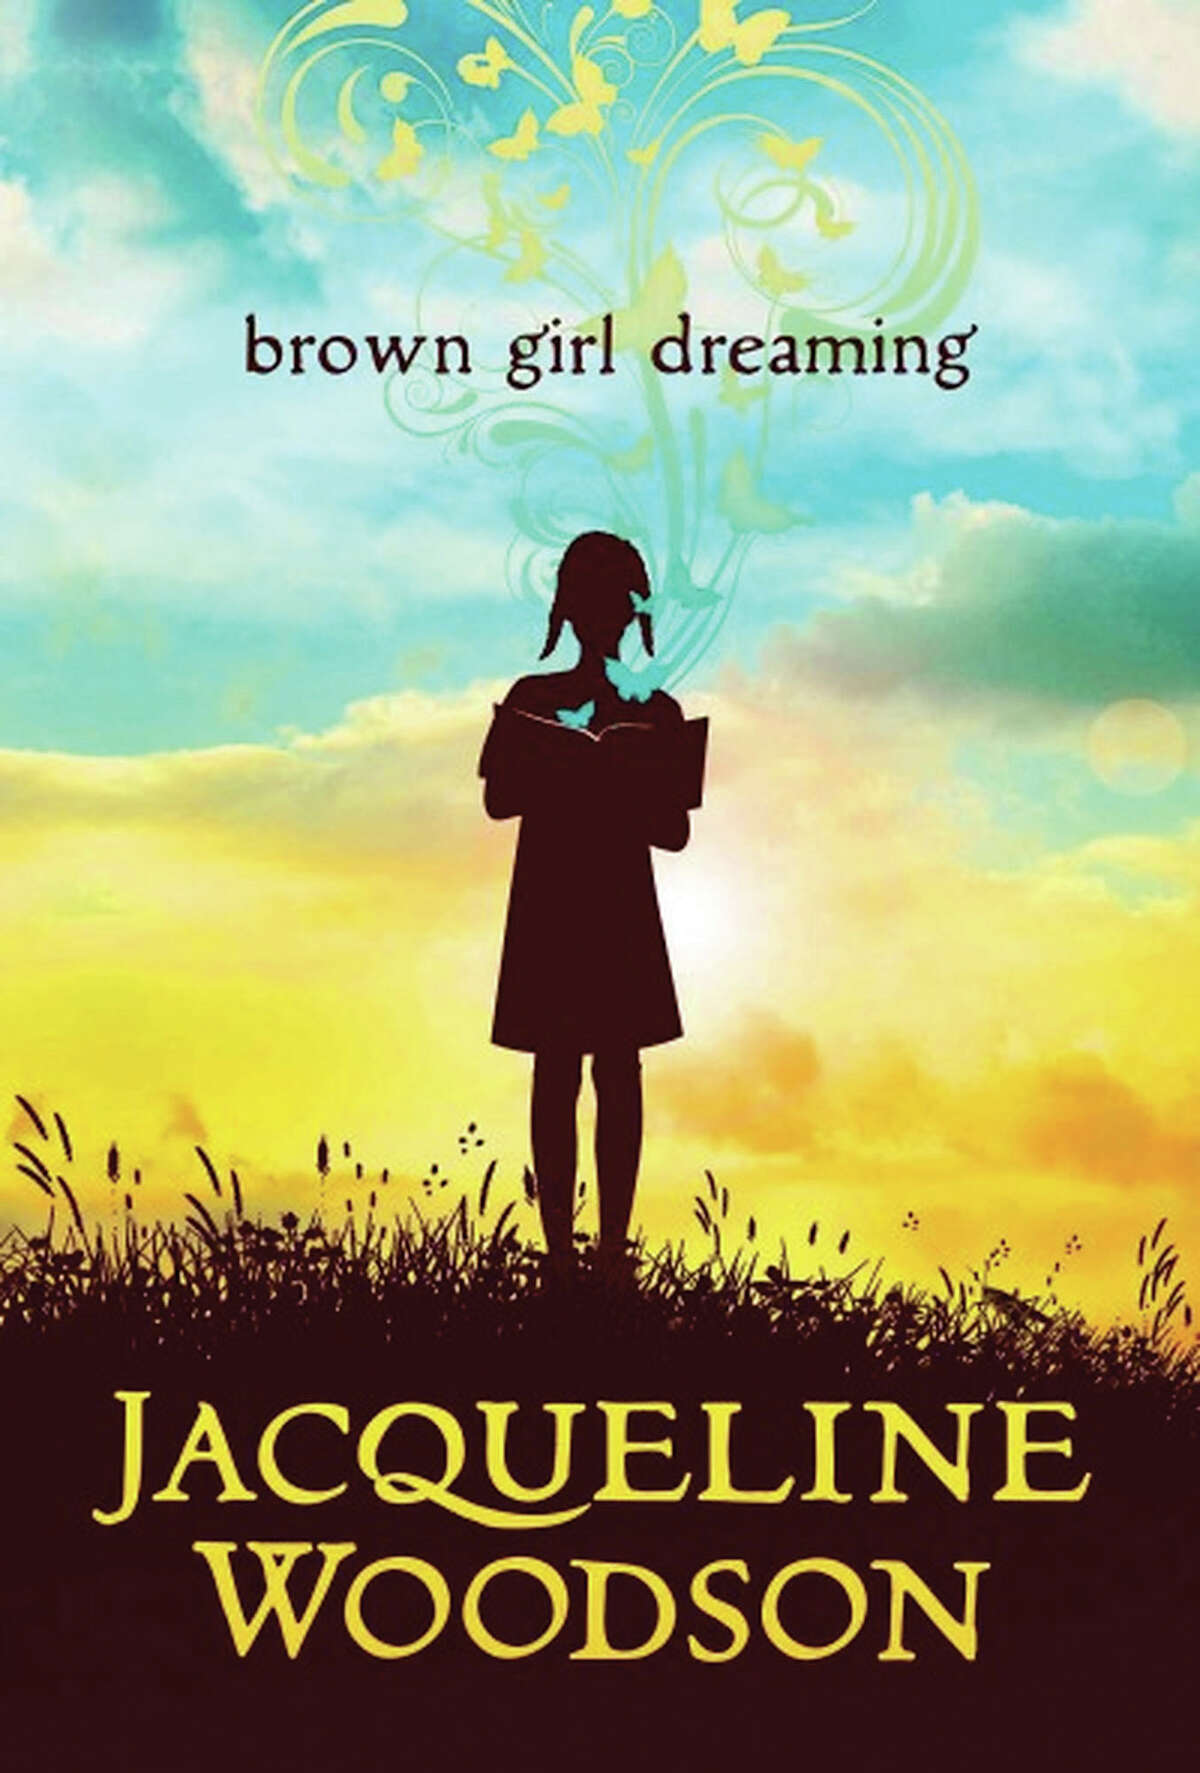 Brown Girl Dreaming by Jacqueline Woodson. (ages 10 and up) Jacqueline Woodson reveals her life, growing up in the 1960s and '70s in both the North and South, in a powerful, poignant memoir in verse.